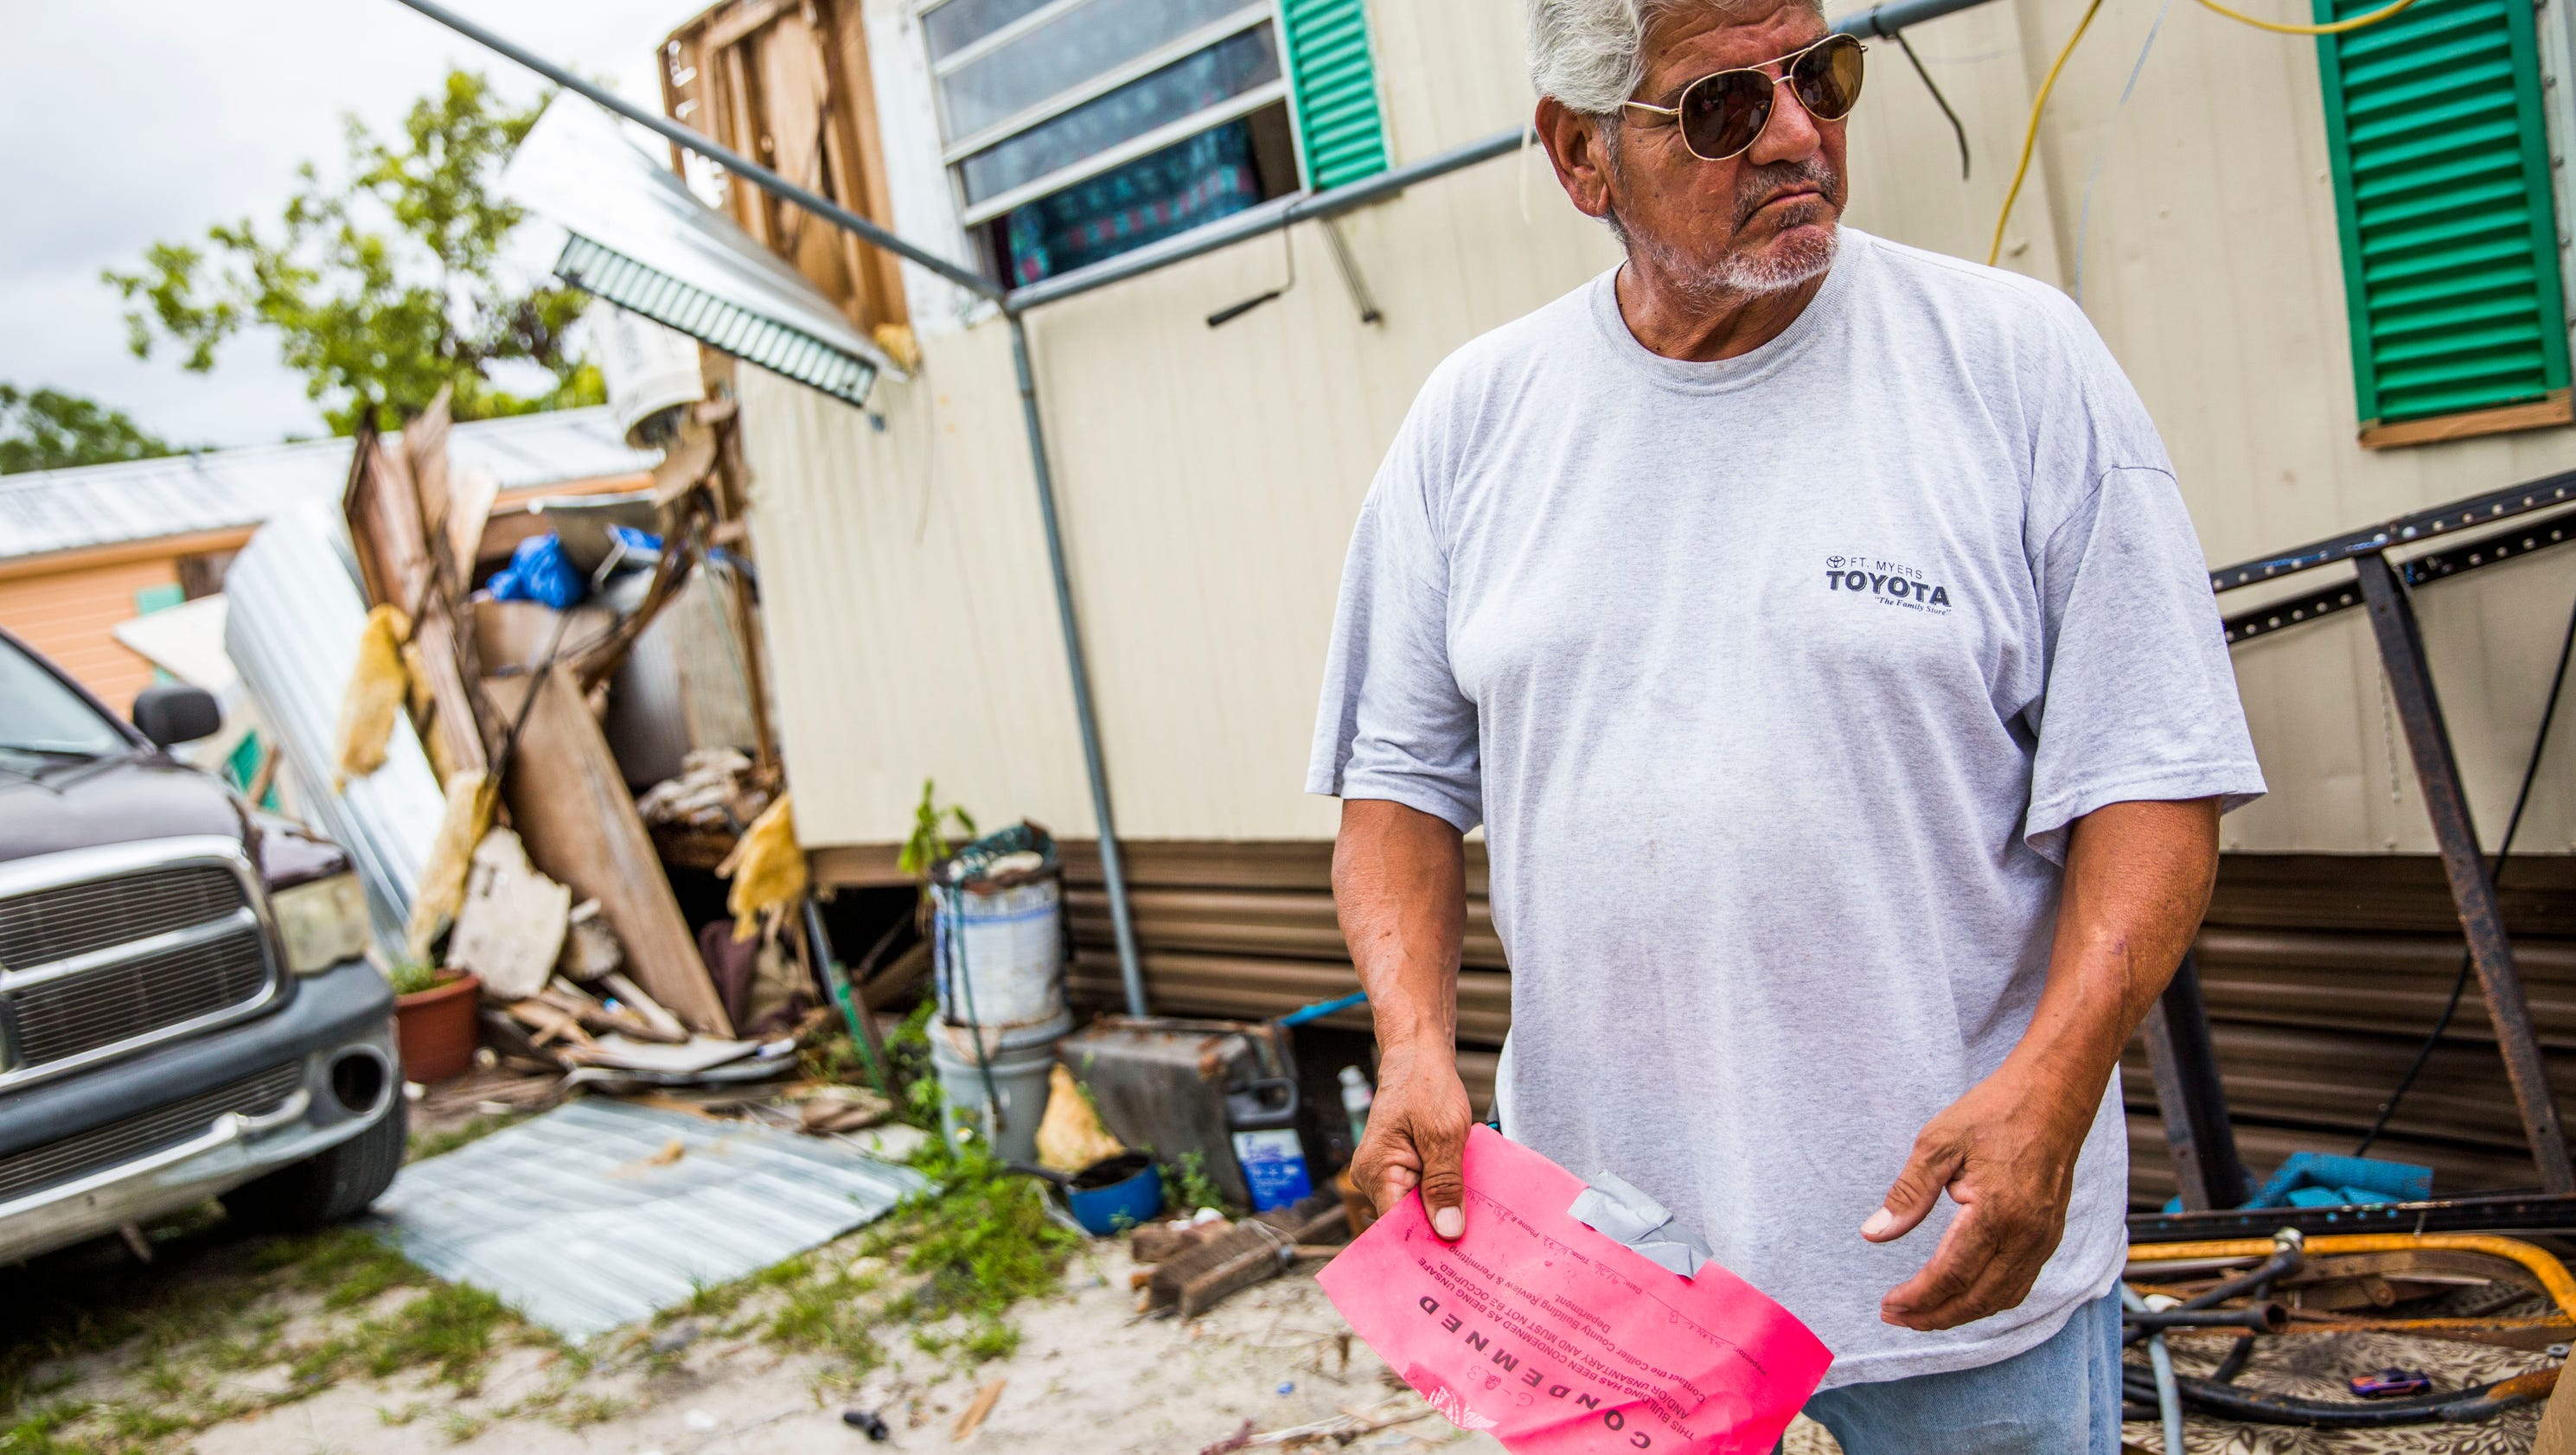 Coast is clear? Some near Naples still struggling after Irma